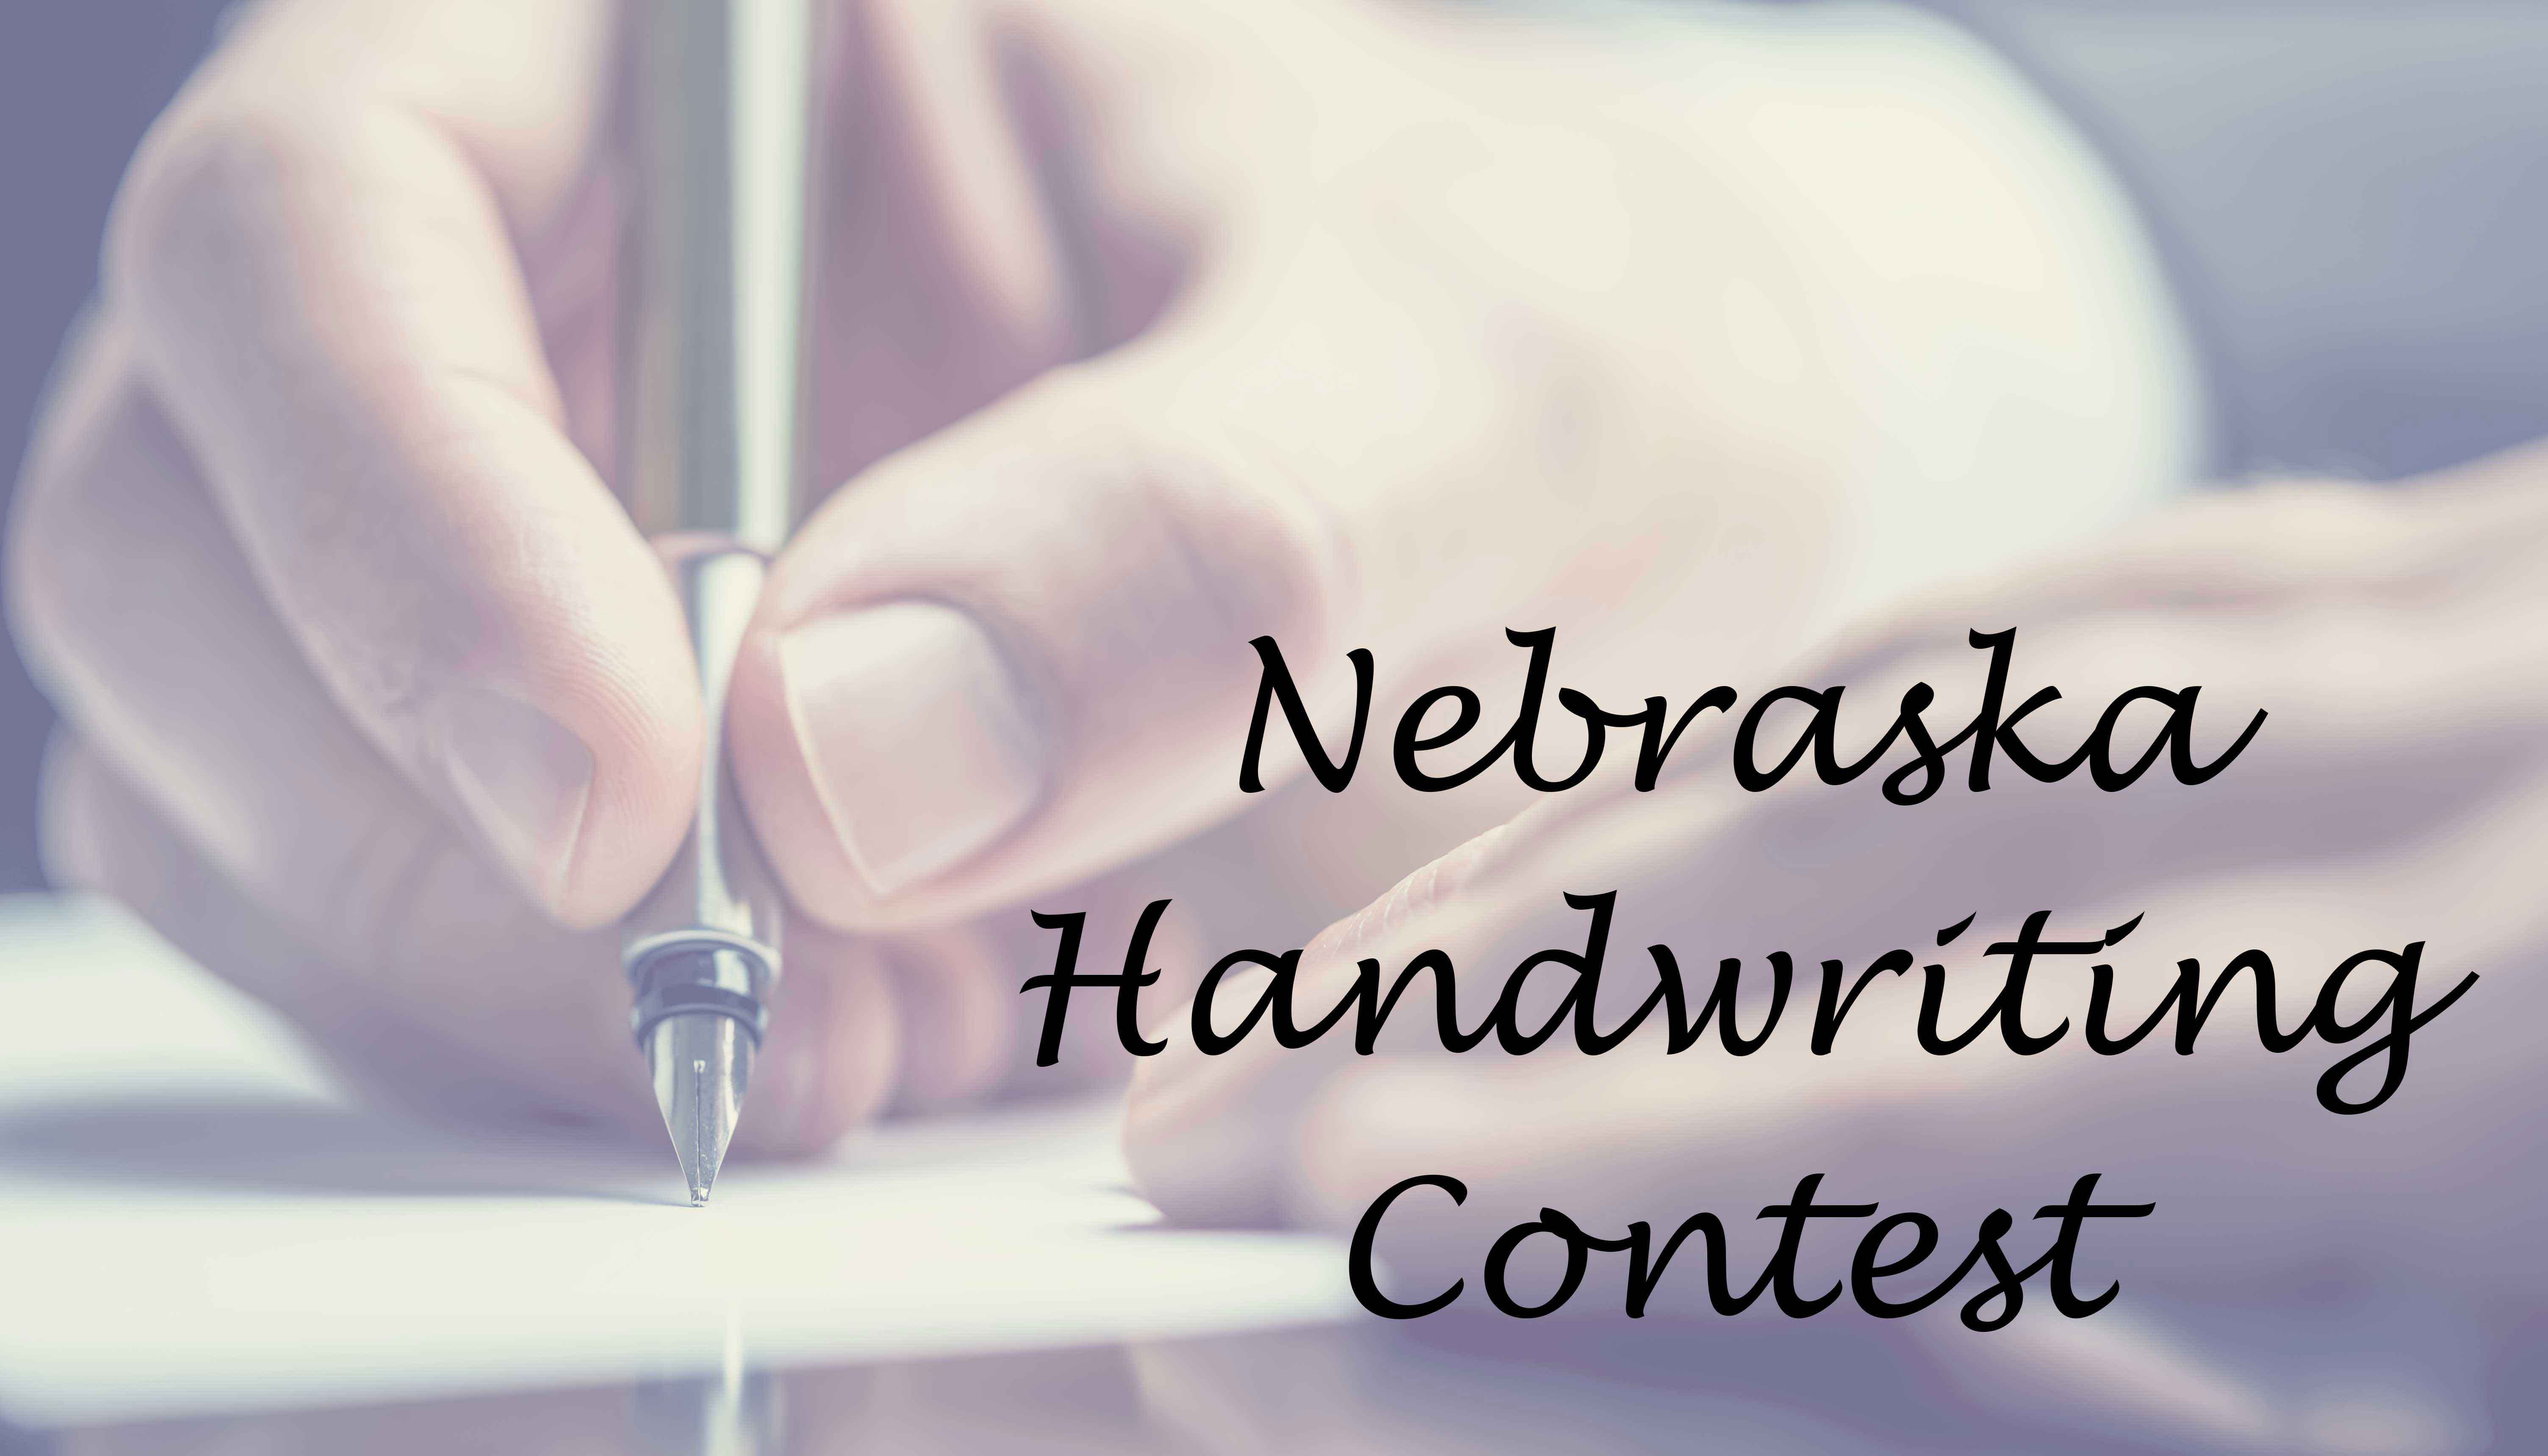 Handwriting-Contest-web